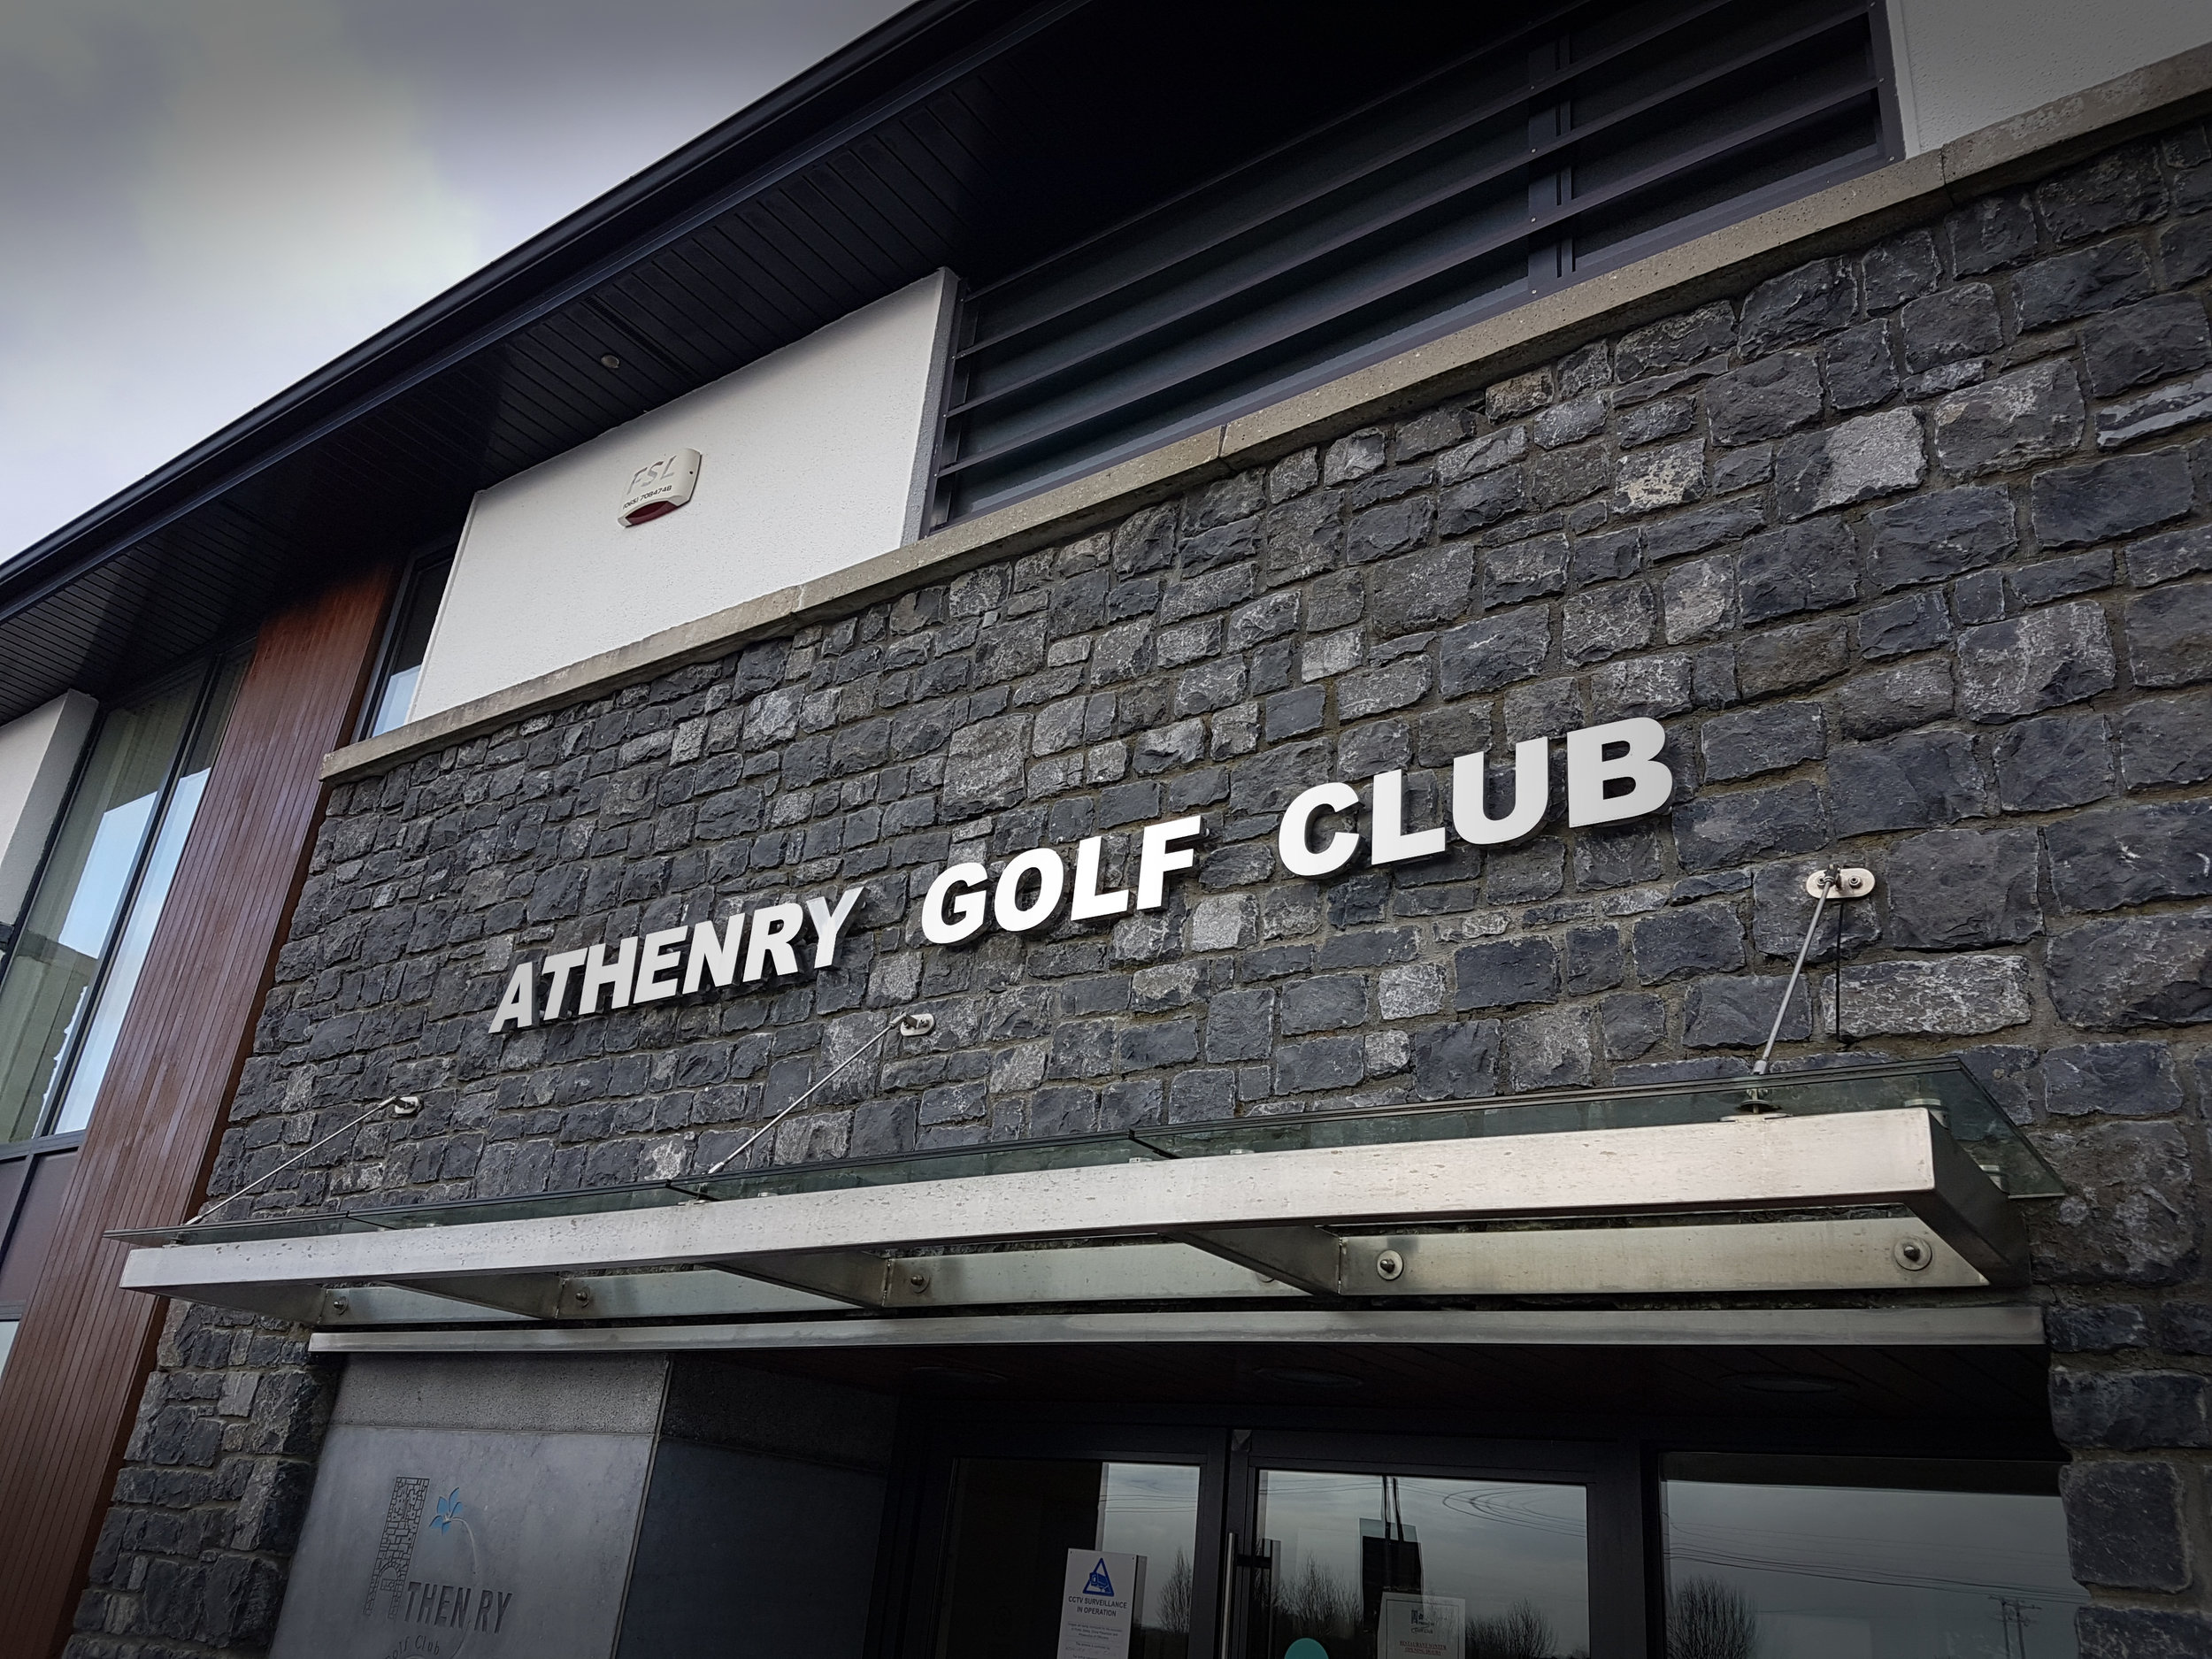 athenry golf club.jpg